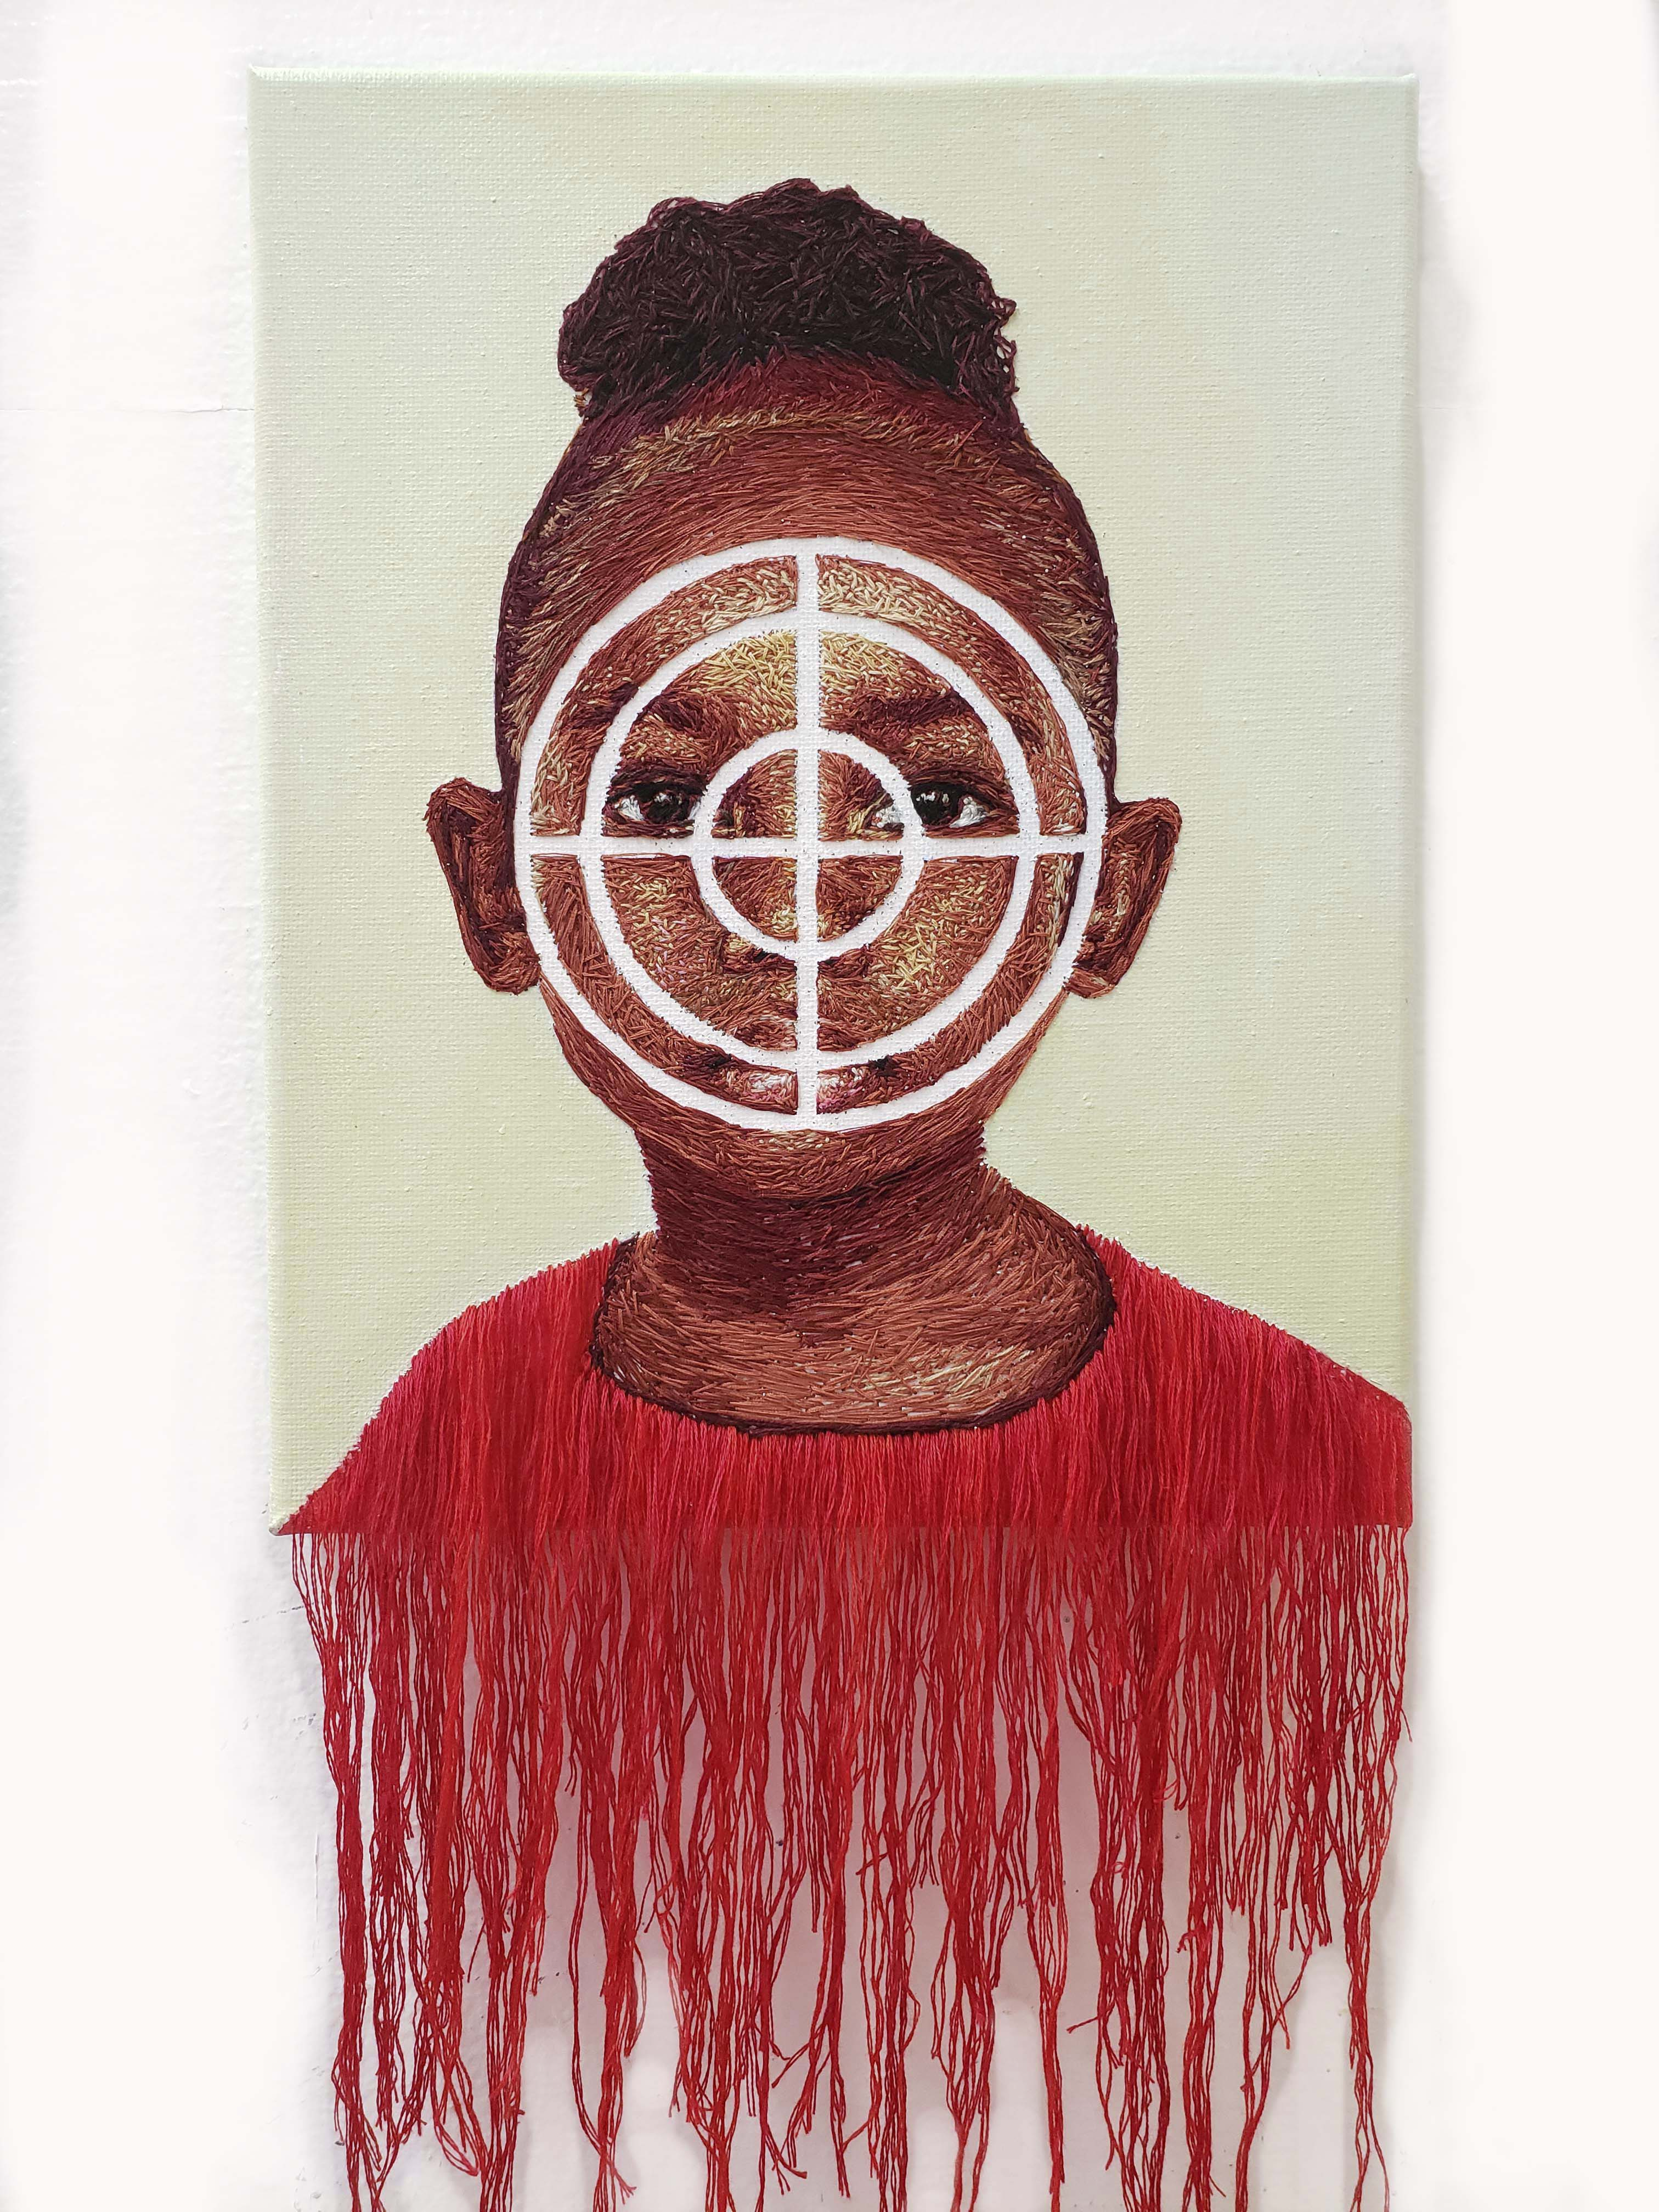 Image of hand embroidered portrait using the symbol of a Target to highlight a young girl as the victim of sexual abuse